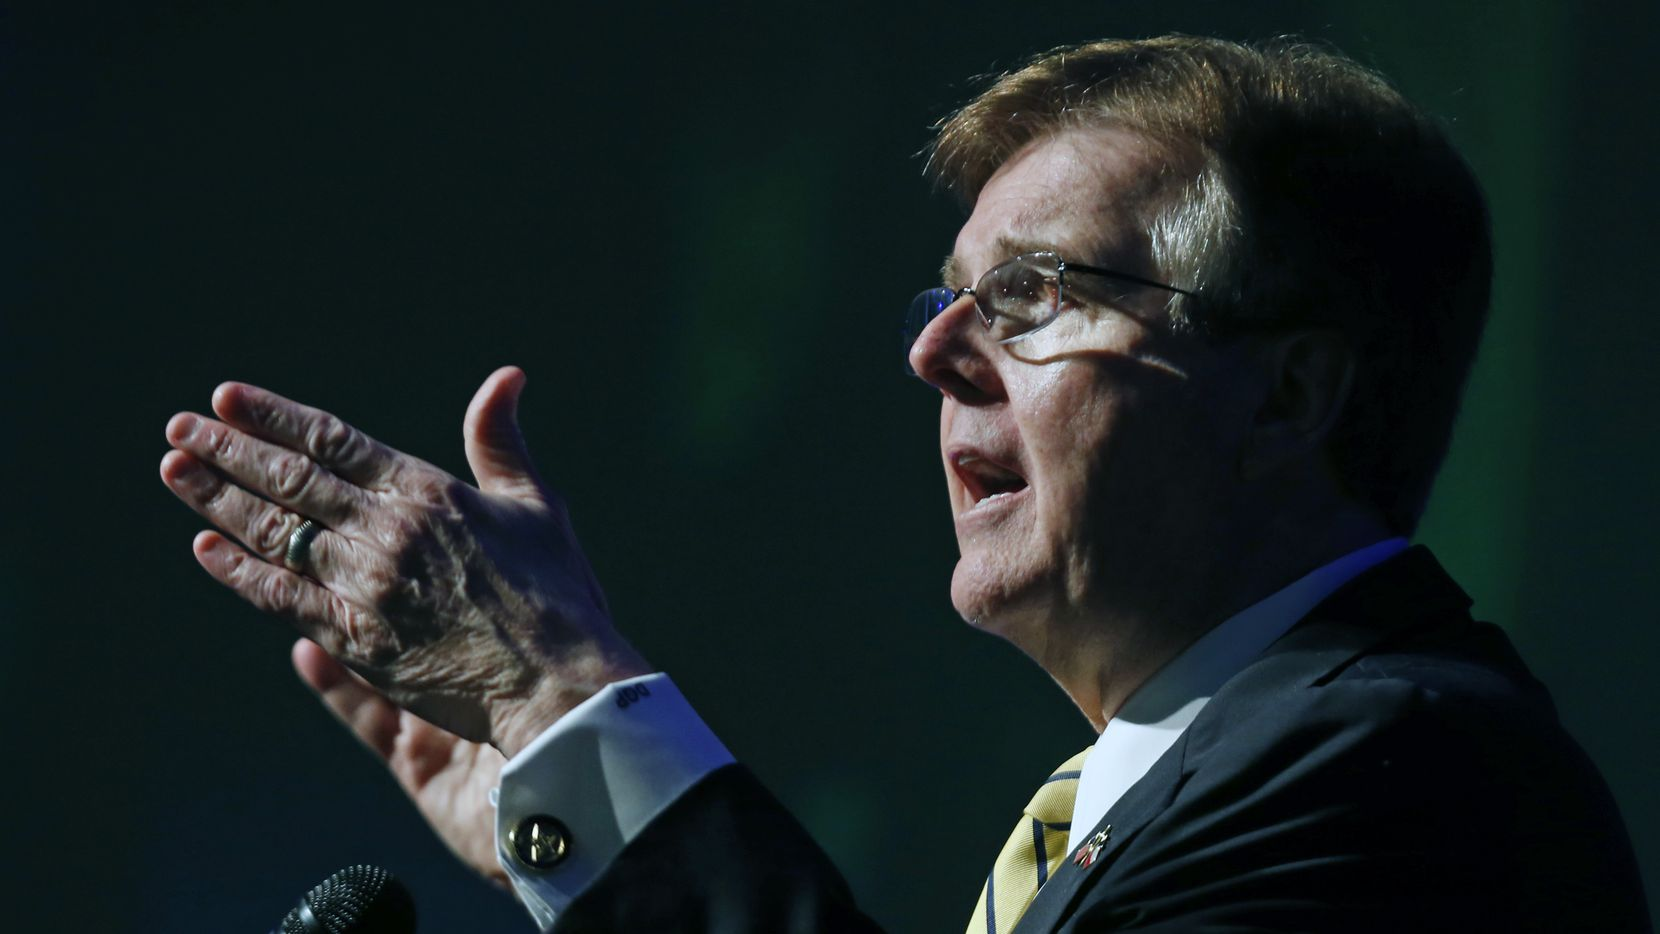 Lt. Gov. Dan Patrick has received more than $880,000 since 2012 from GOP megadonor group Empower Texans, far more than it has given any other candidate.